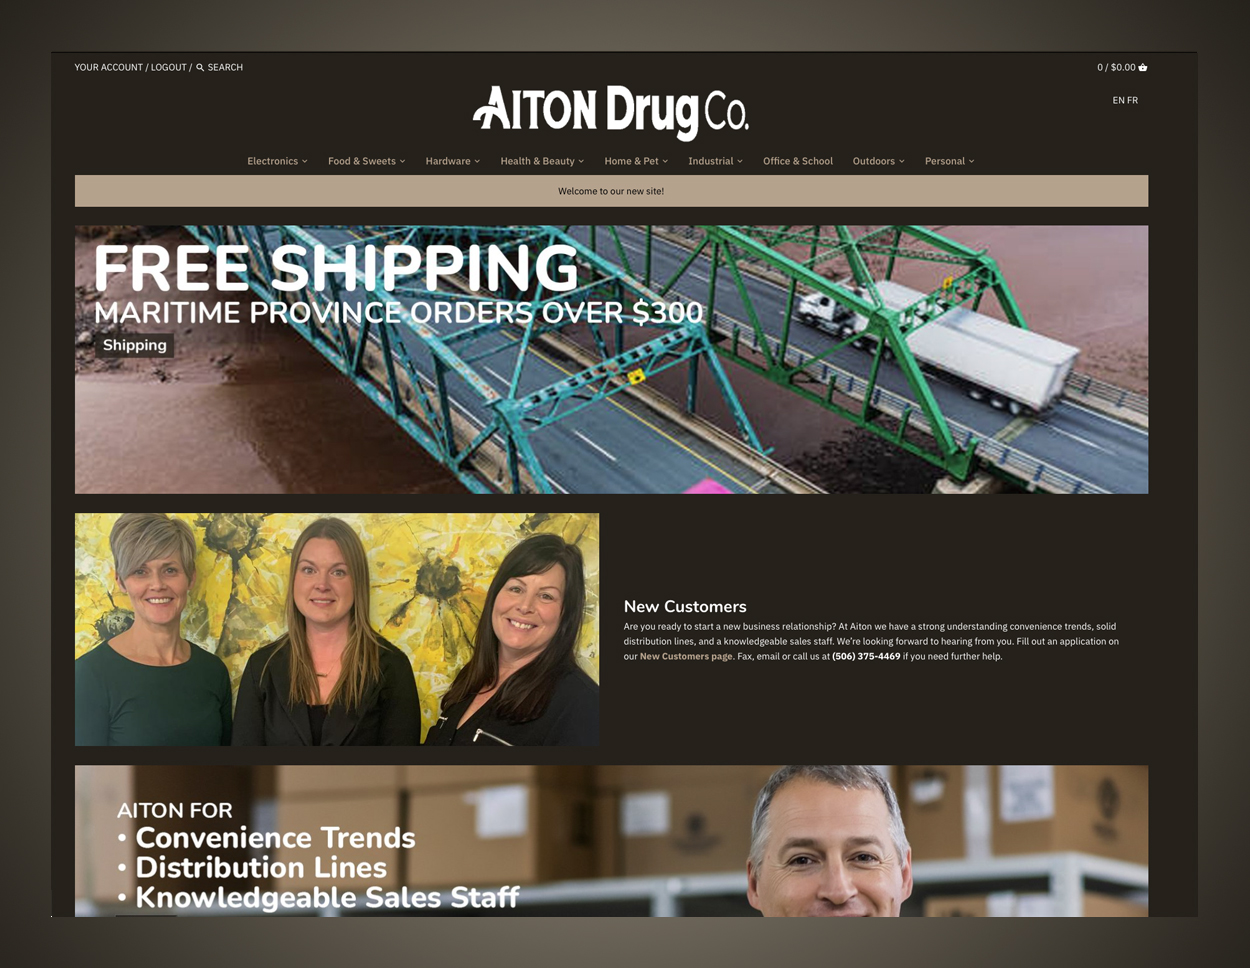 Aiton Drug Co home page.